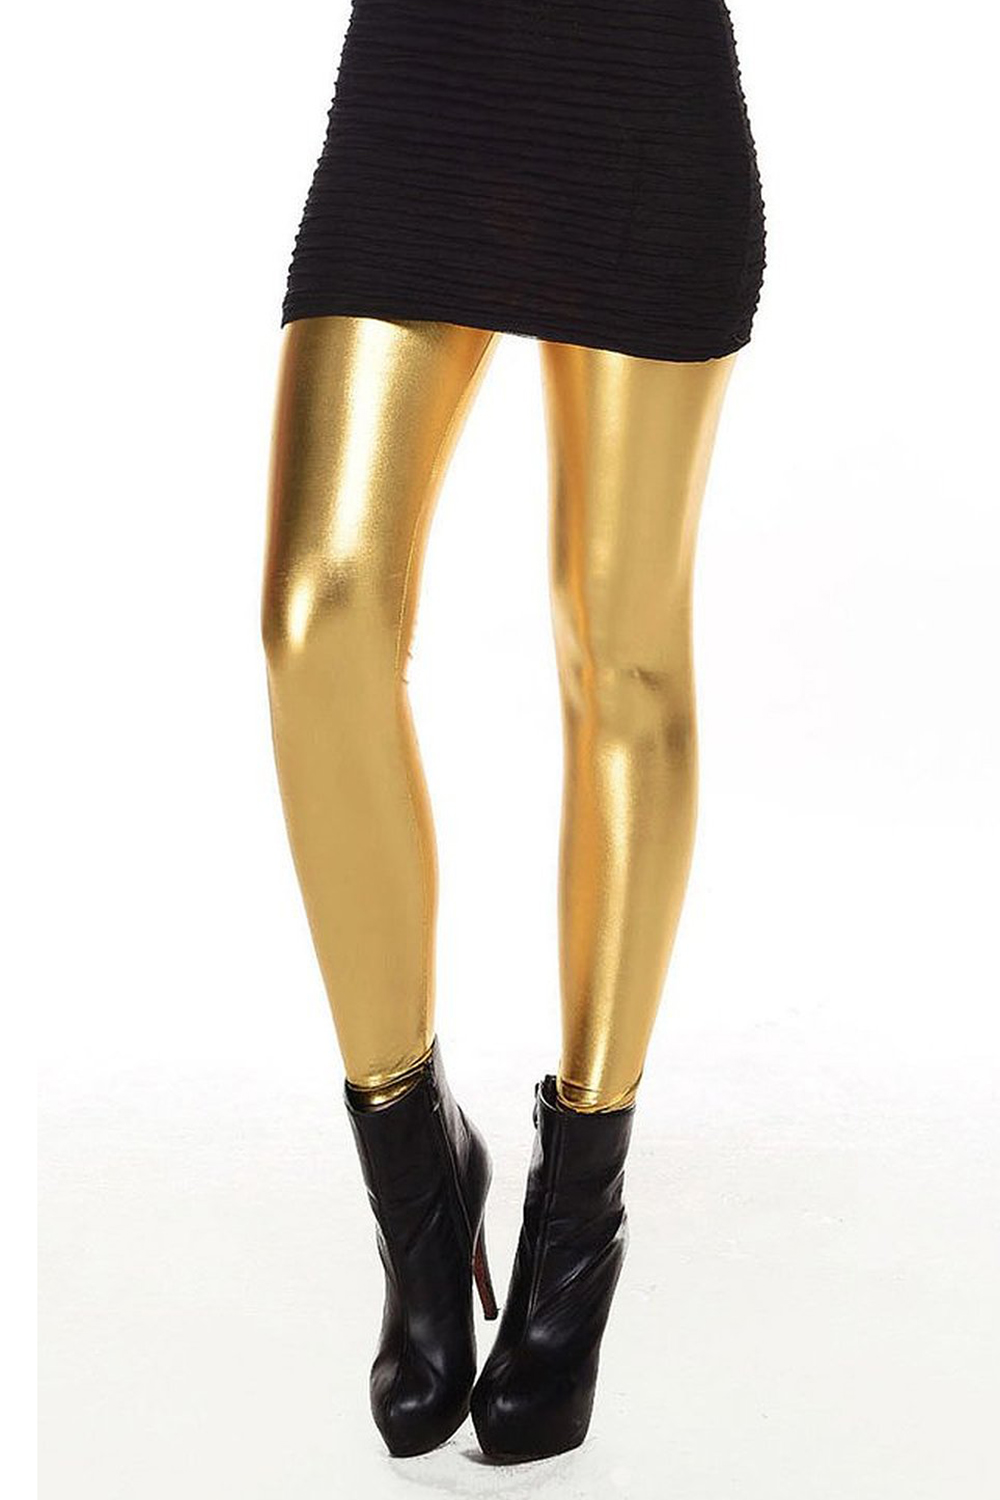 2017 NEW Metallic Wet Look Liquid   Leggings   Shiny Stretch Women Pencil Pants(gold)